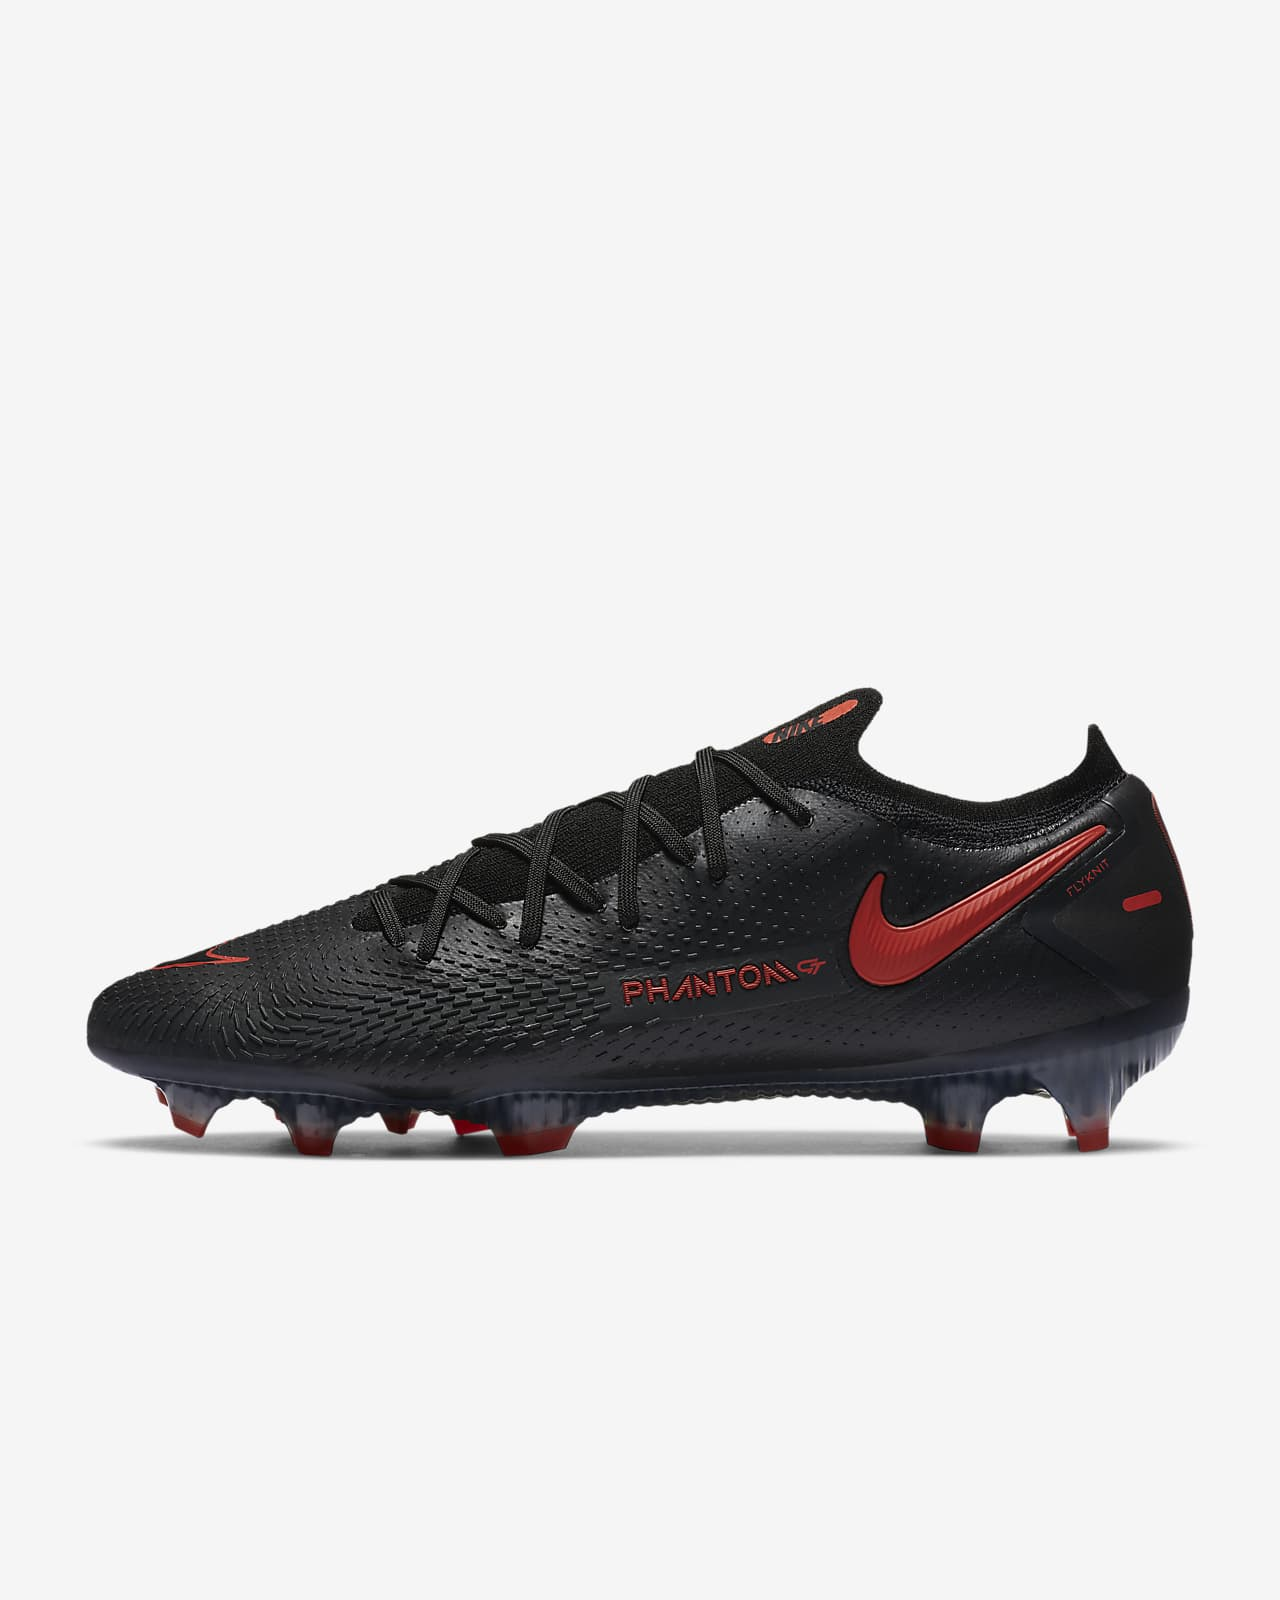 Nike Phantom GT Elite FG Firm-Ground Football Boot